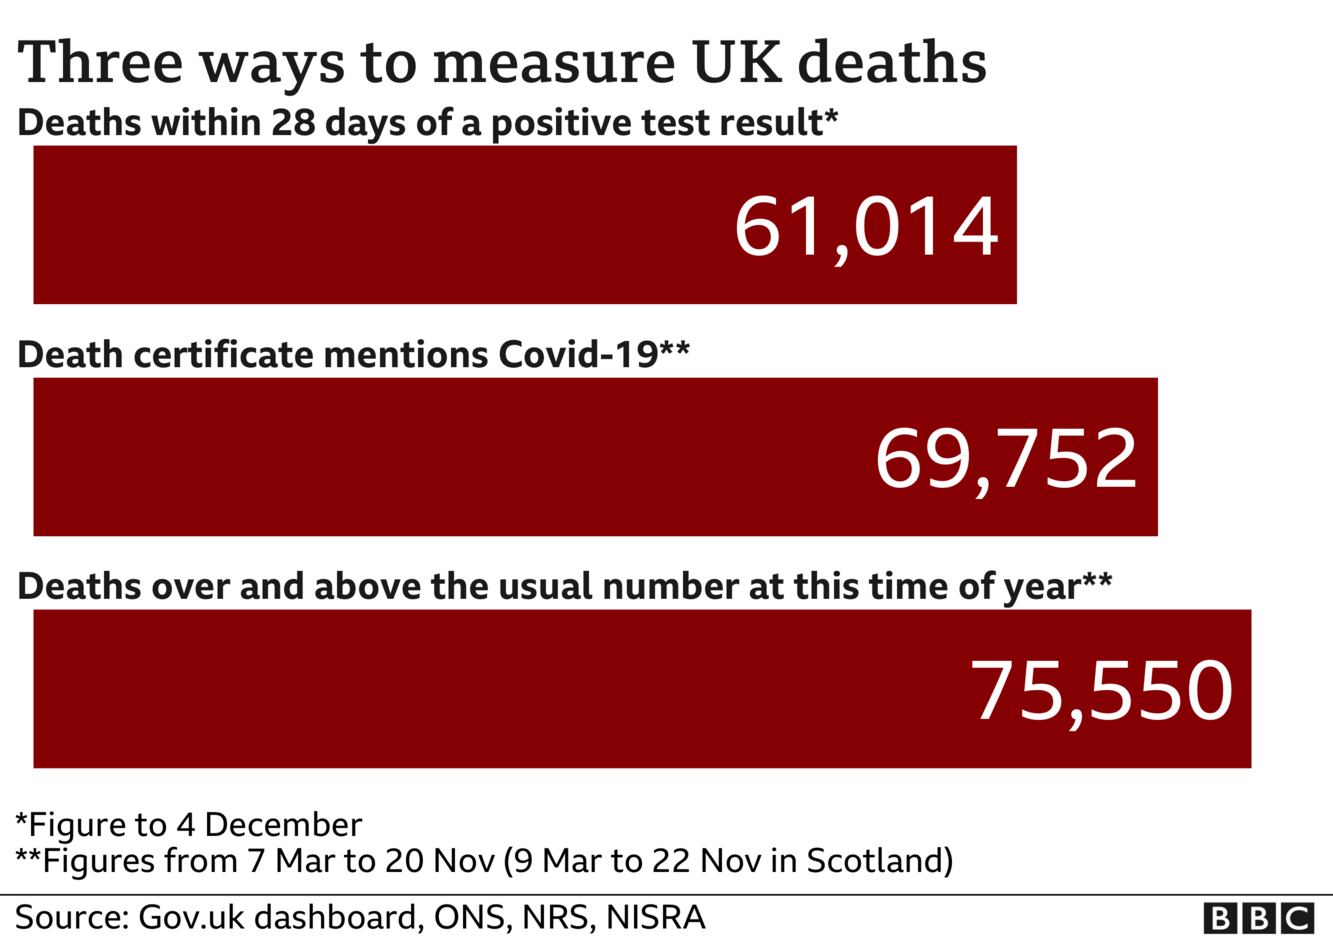 Bar chart shows three different totals for coronavirus deaths - the government measures all deaths within 28 days of a positive test, that total is 61,014, the ONS includes all deaths where coronavirus was mentioned on the death certificate, that total is 69,752 and the final total includes all deaths over and above the average for the time of year and that total is now 75,550